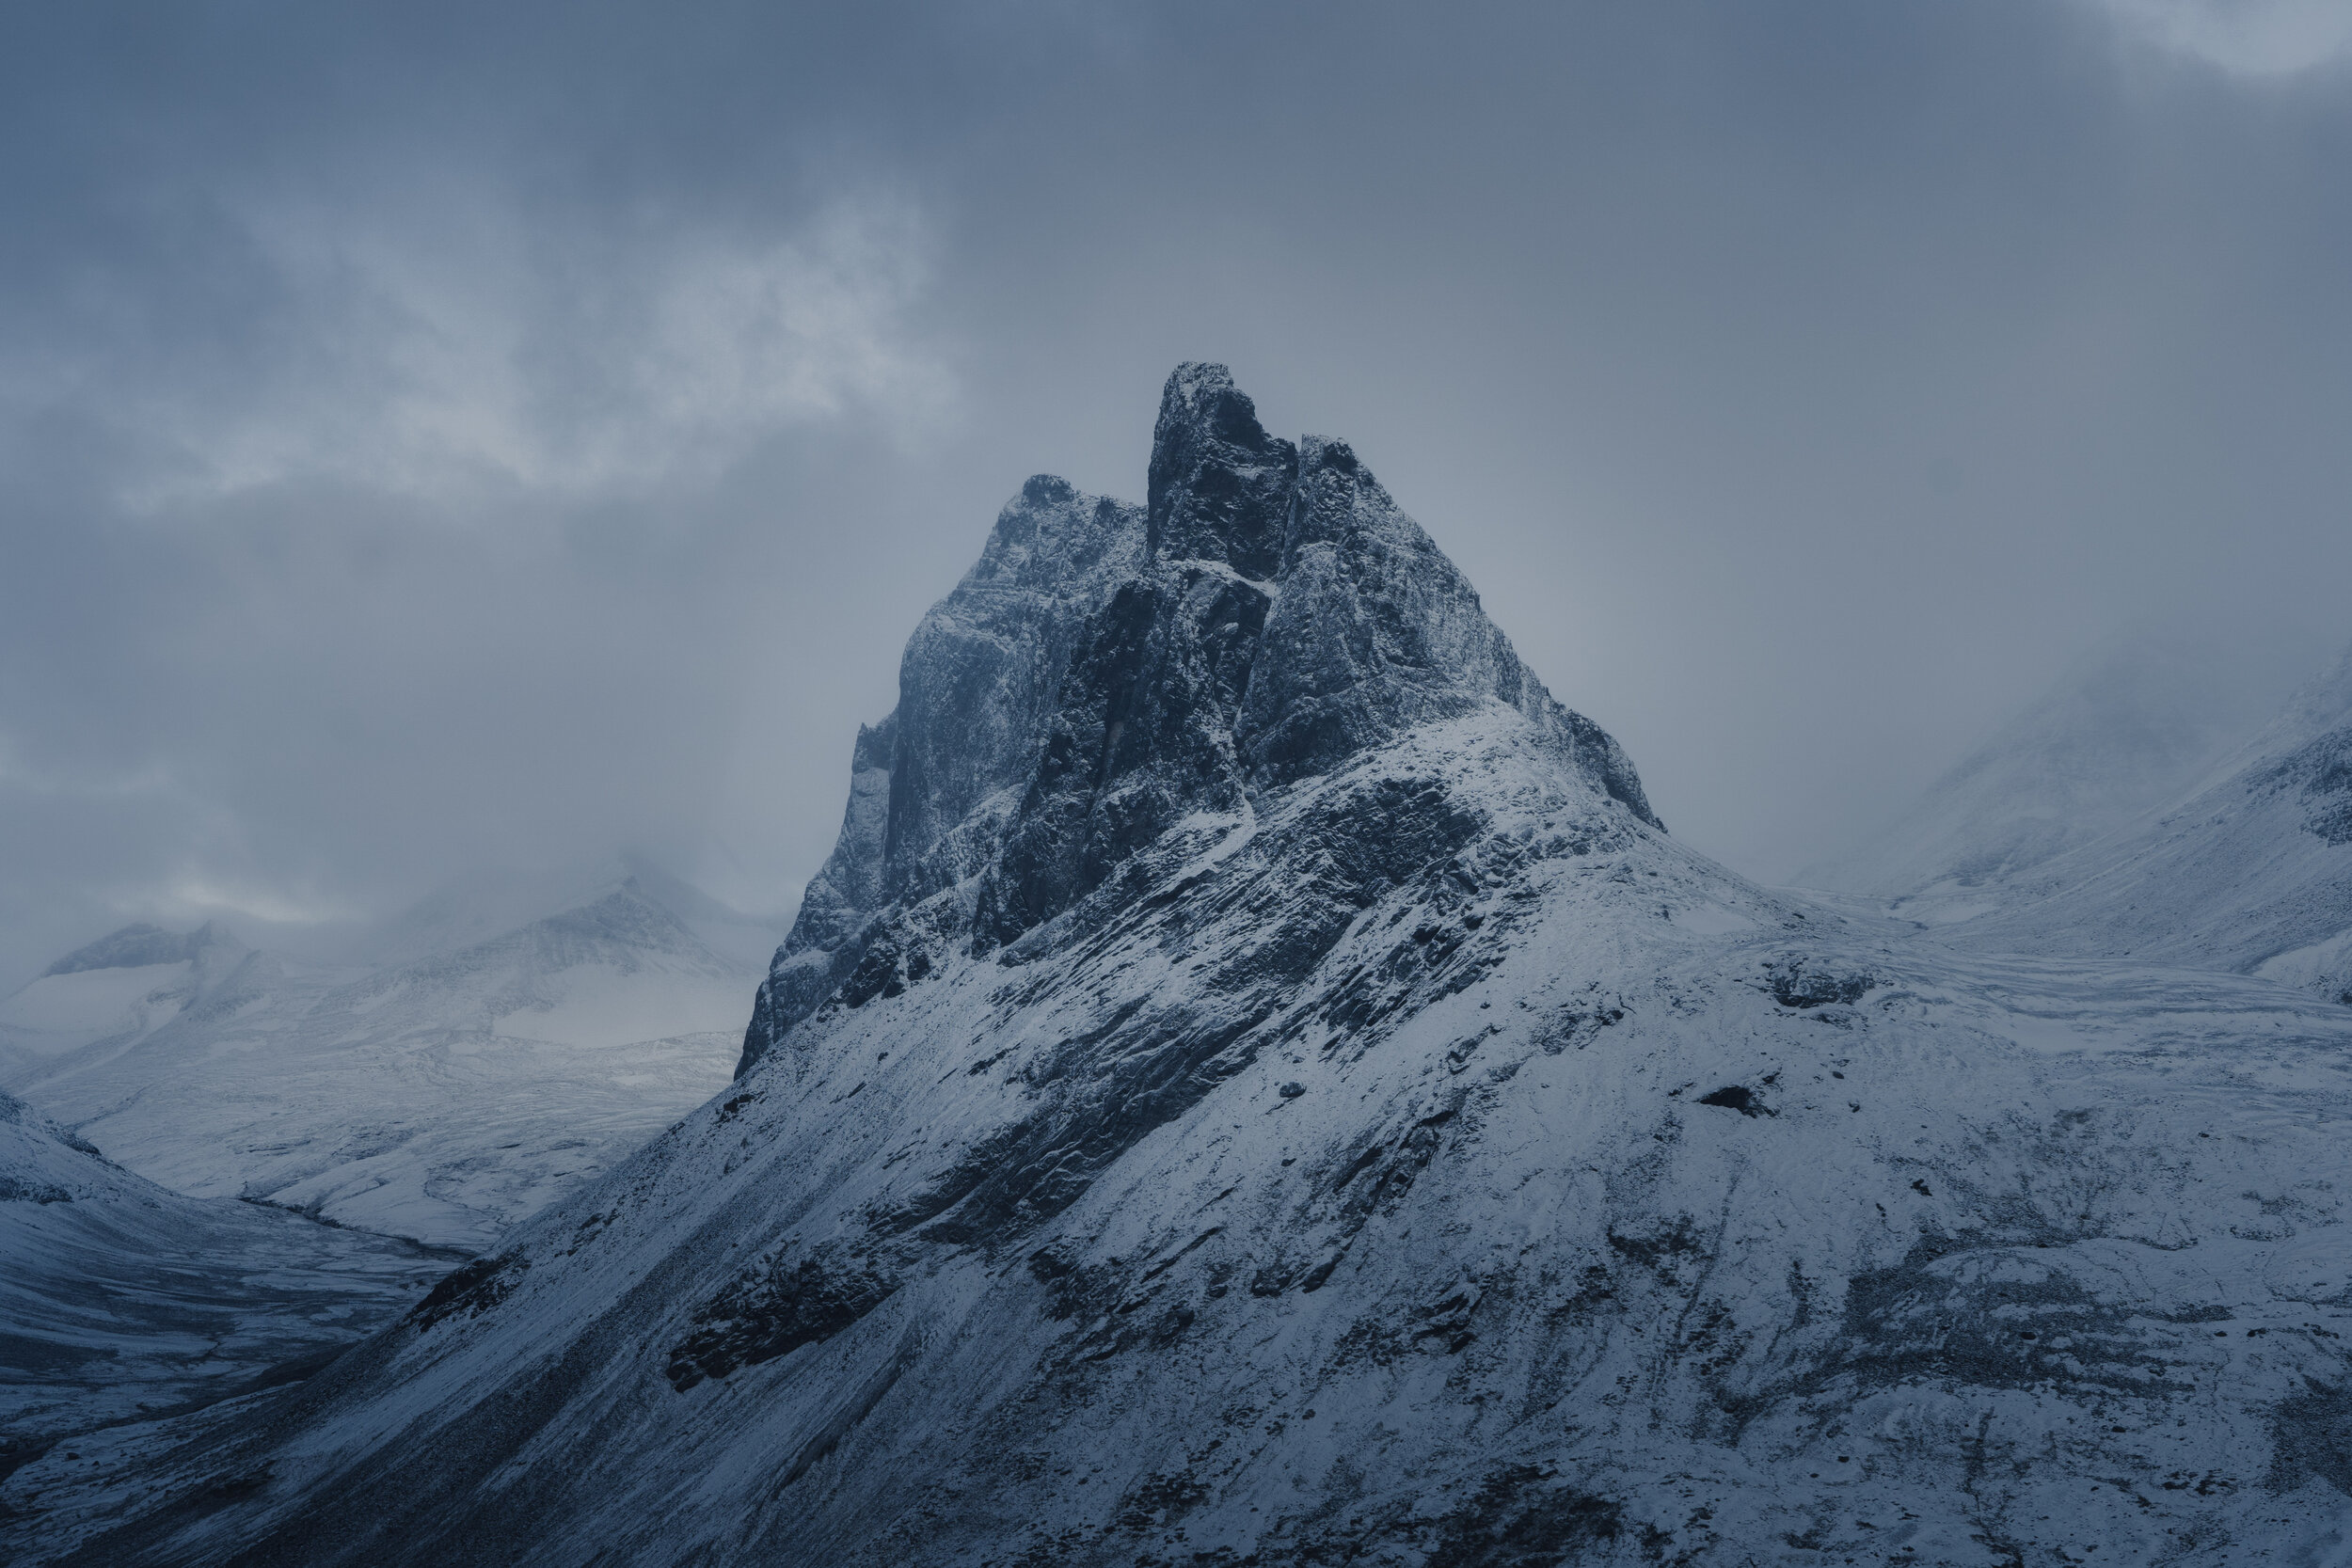 The Nallo Mountain with its sharp appearance - has given it its Sami name, which in English translates to   The Needle